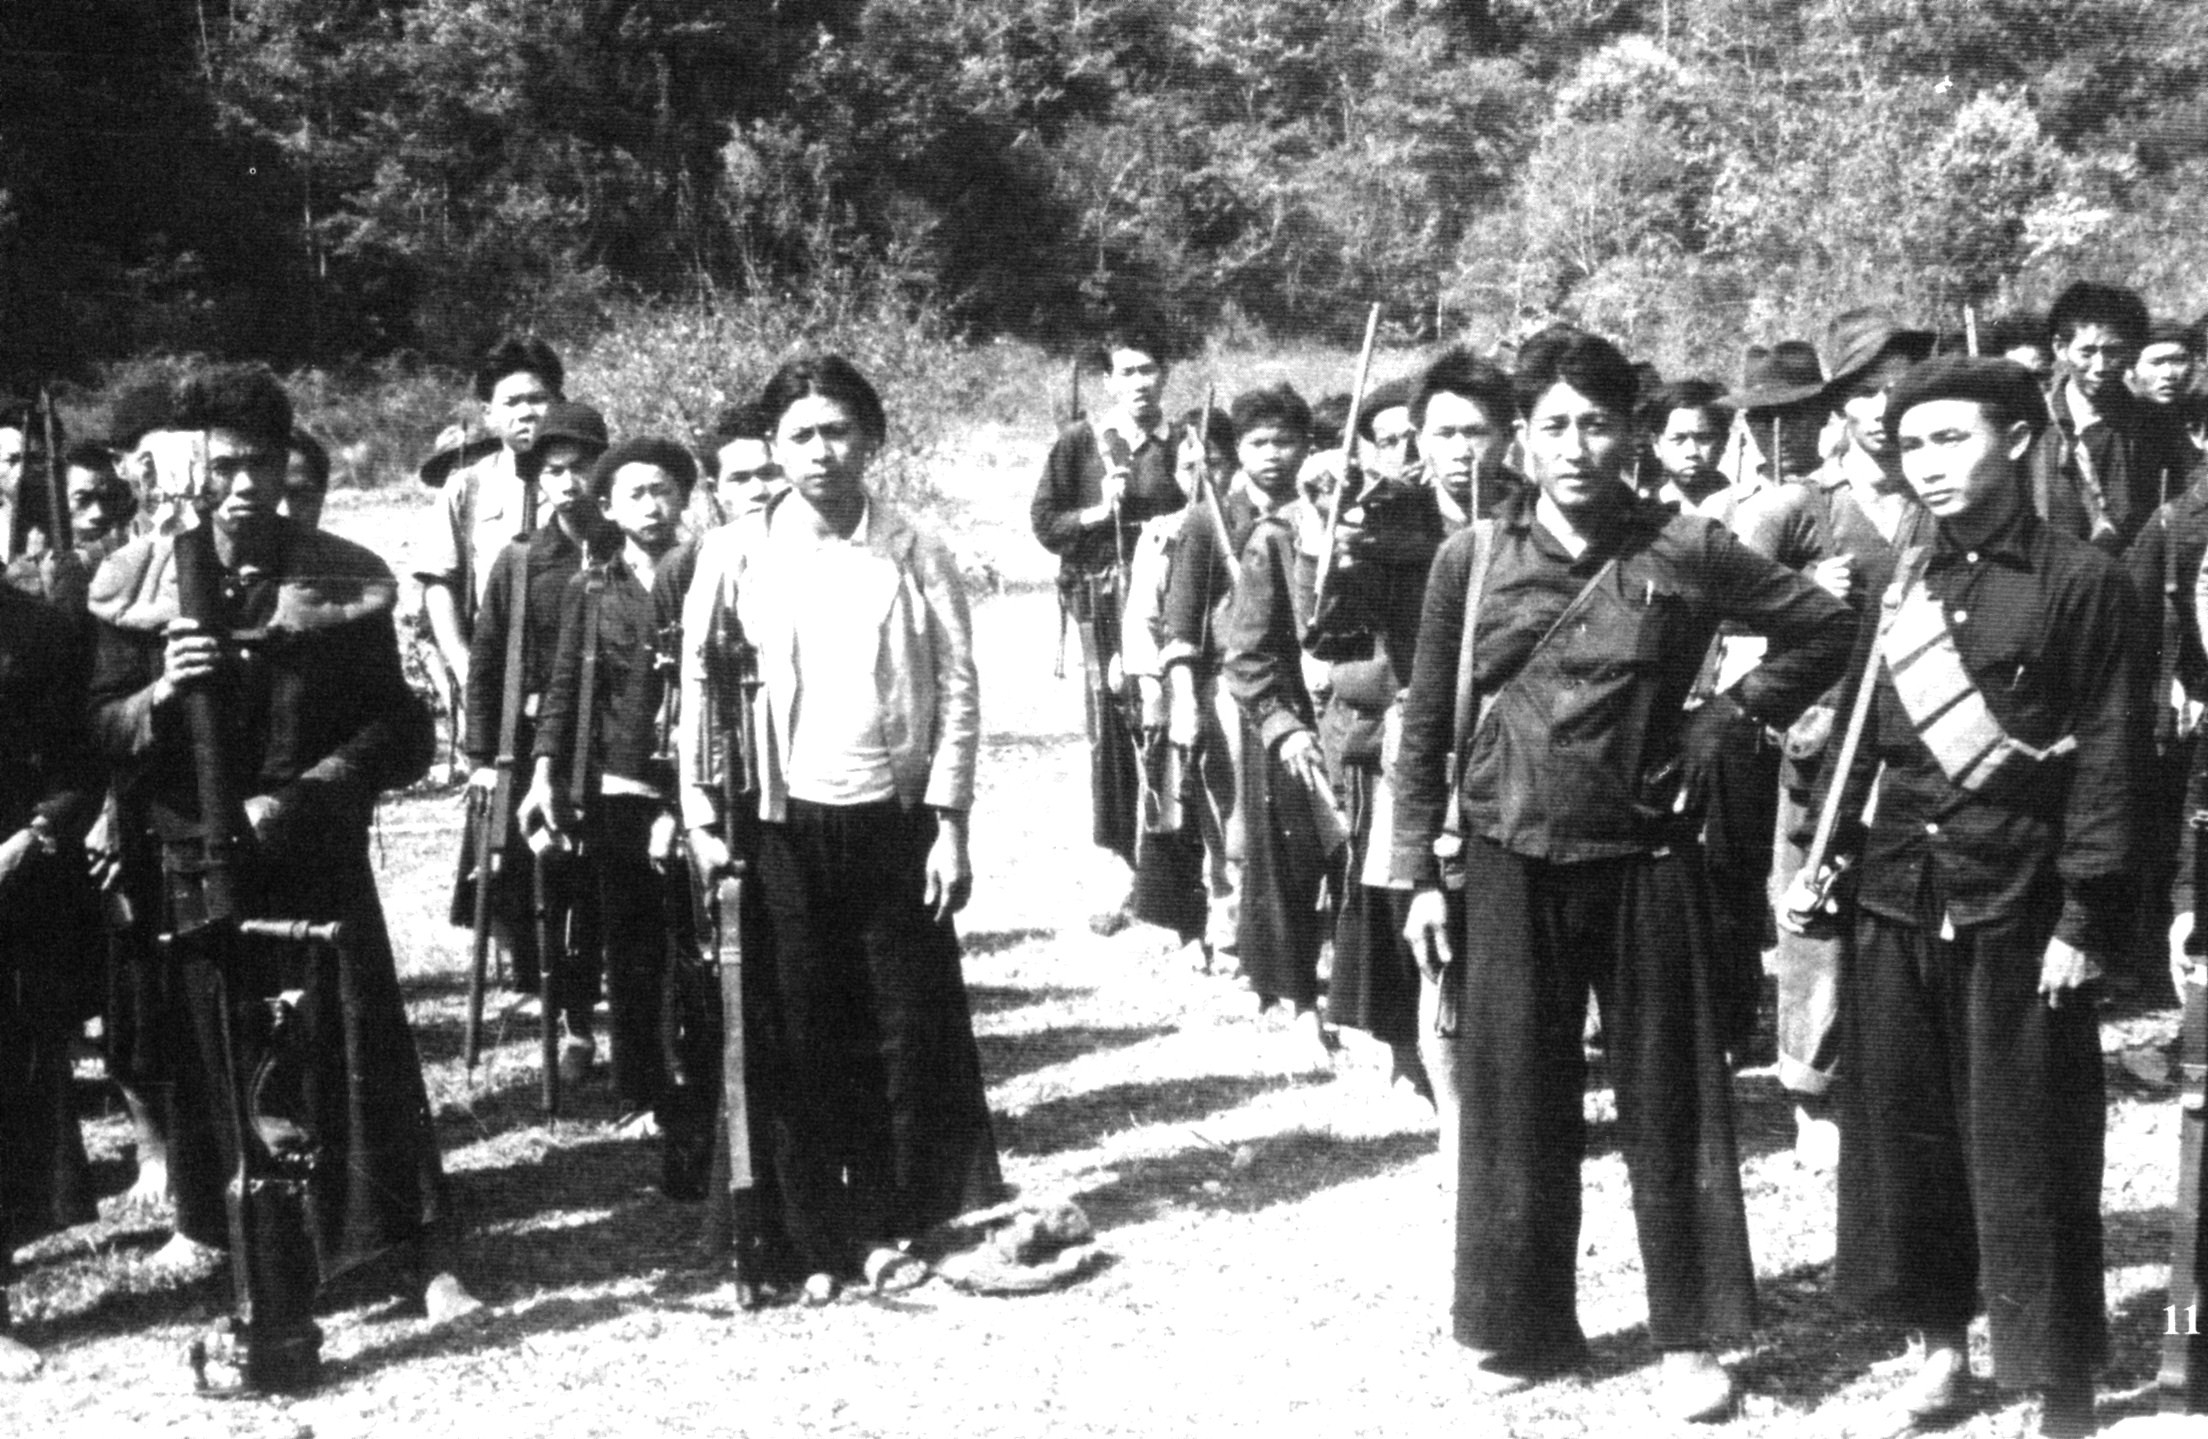 Hmong_soldiers.jpg